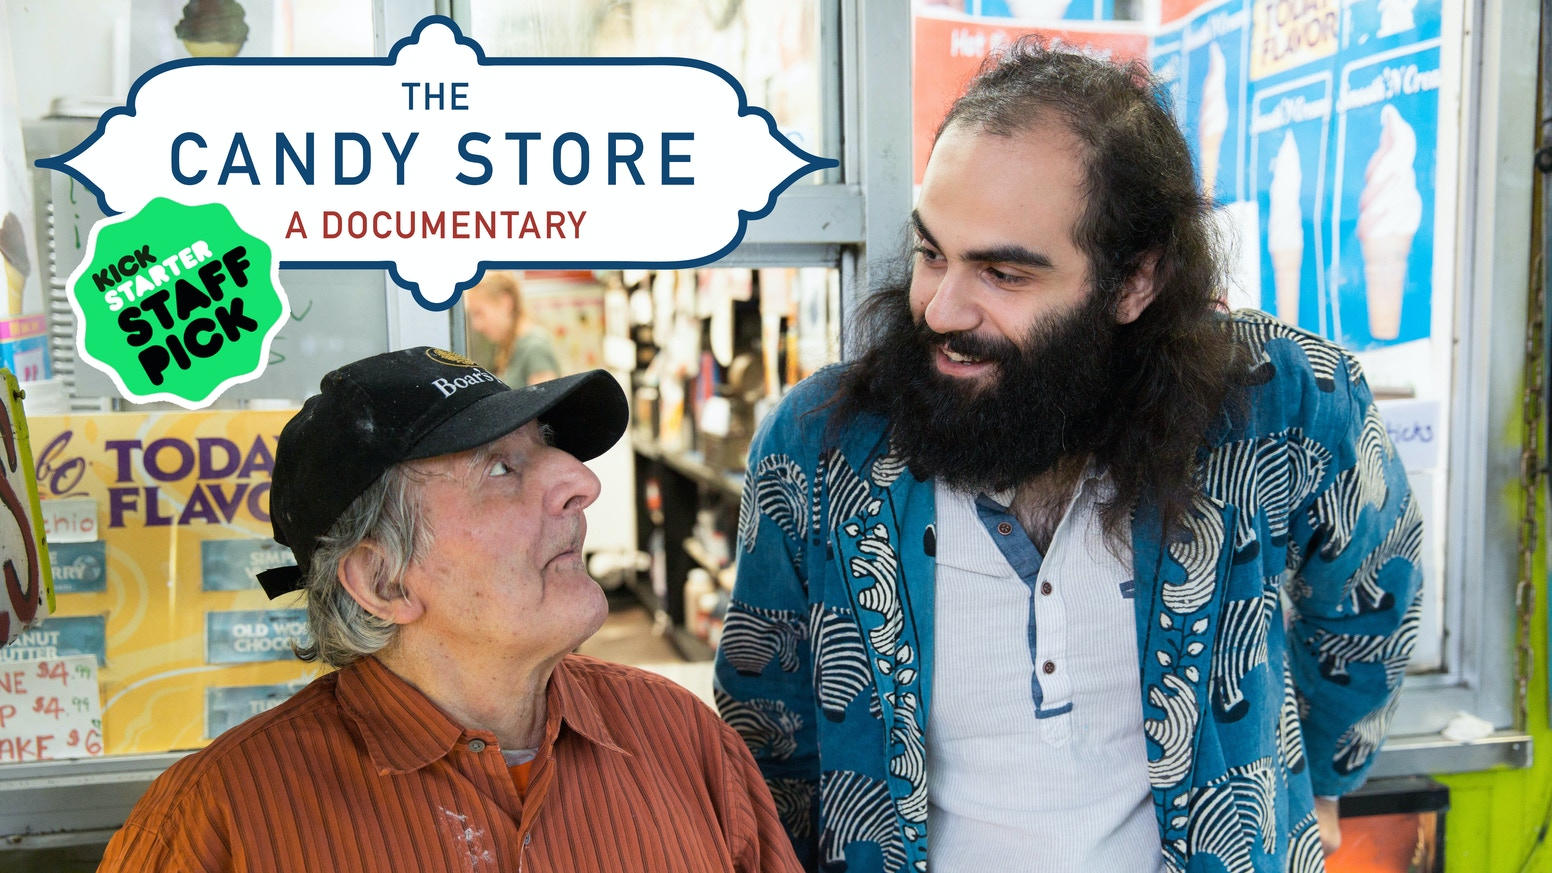 Please join us as we grow at CandyStoreMovie.com !     The tale of a miraculous friendship between a young Iranian artist & the proprietor of the last all-night candy store in NYC - follow @candystoremovie. Dance Party: discotehran.nyc